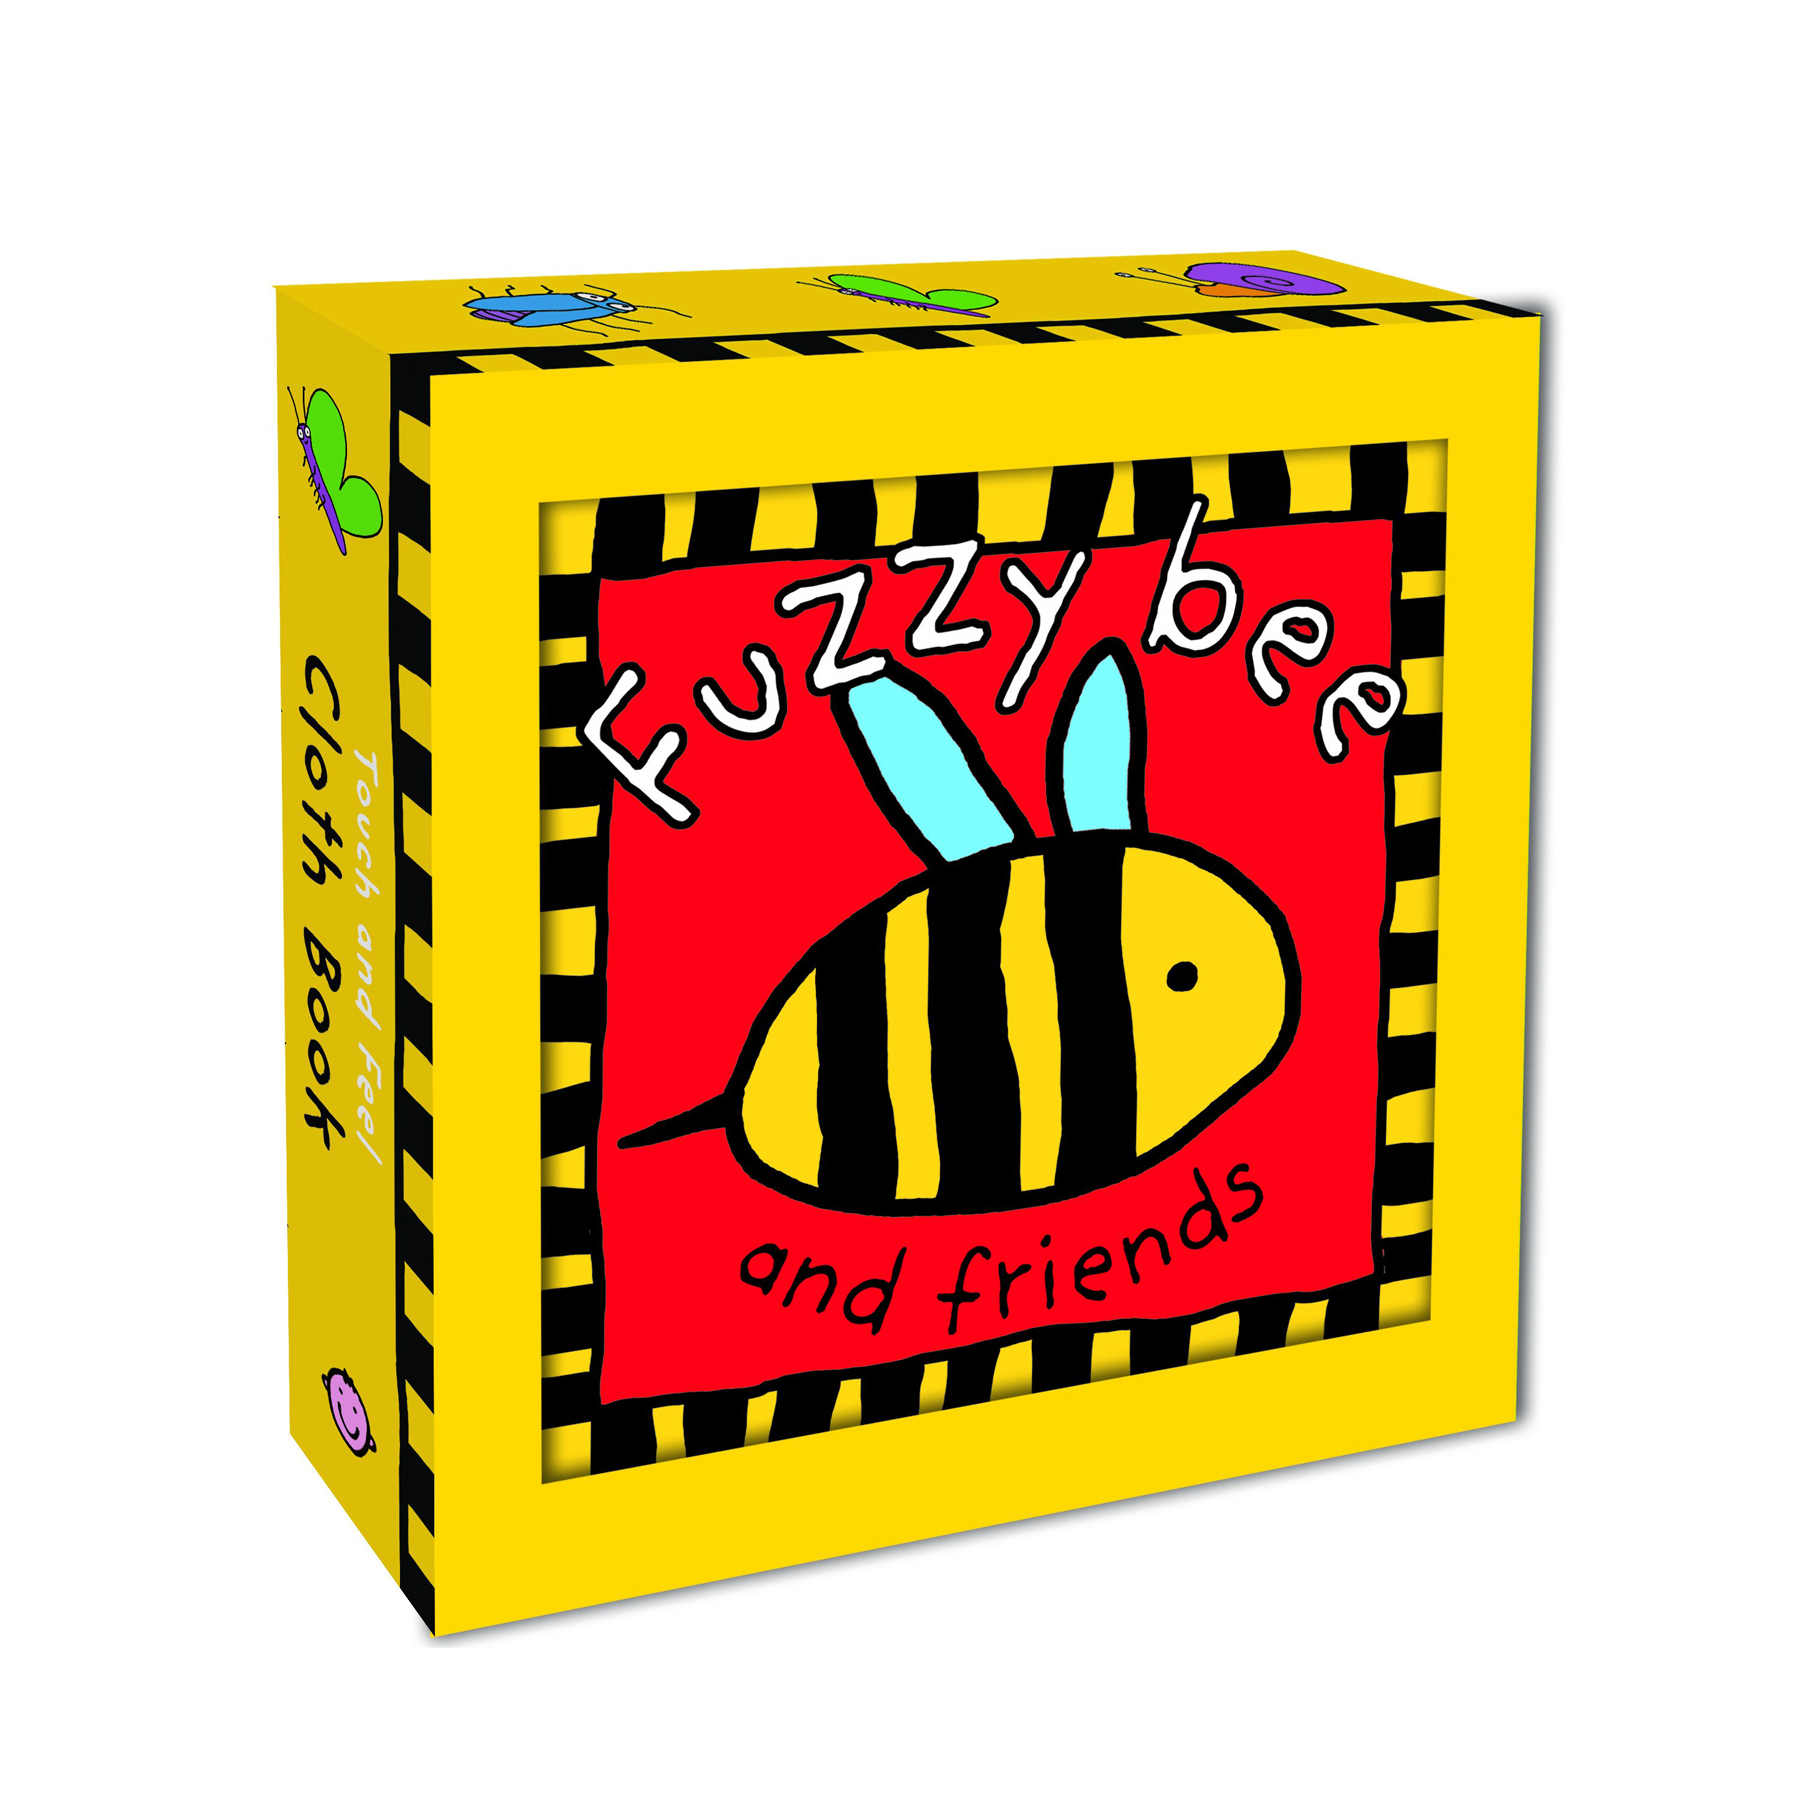 Best newborn baby gifts - Fuzzy Bee and Friends by Roger Priddy